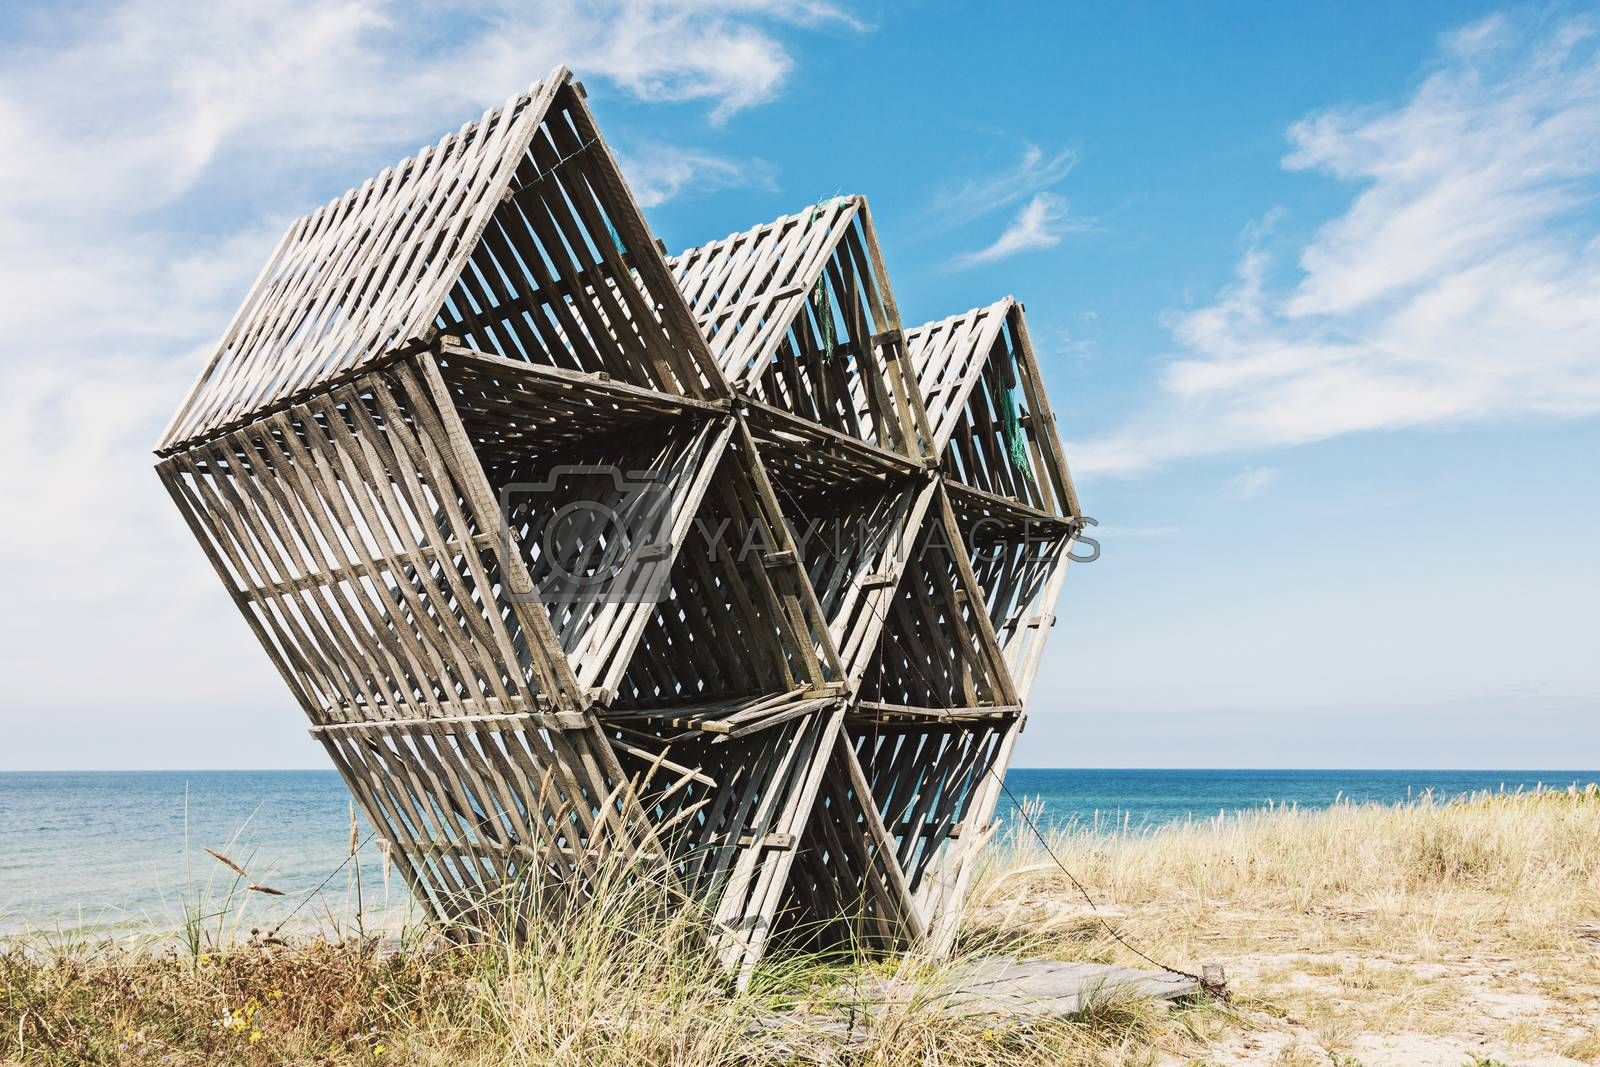 Old abandoned wooden geometric sculpture on wild beach in Juodkrante, Lithuania